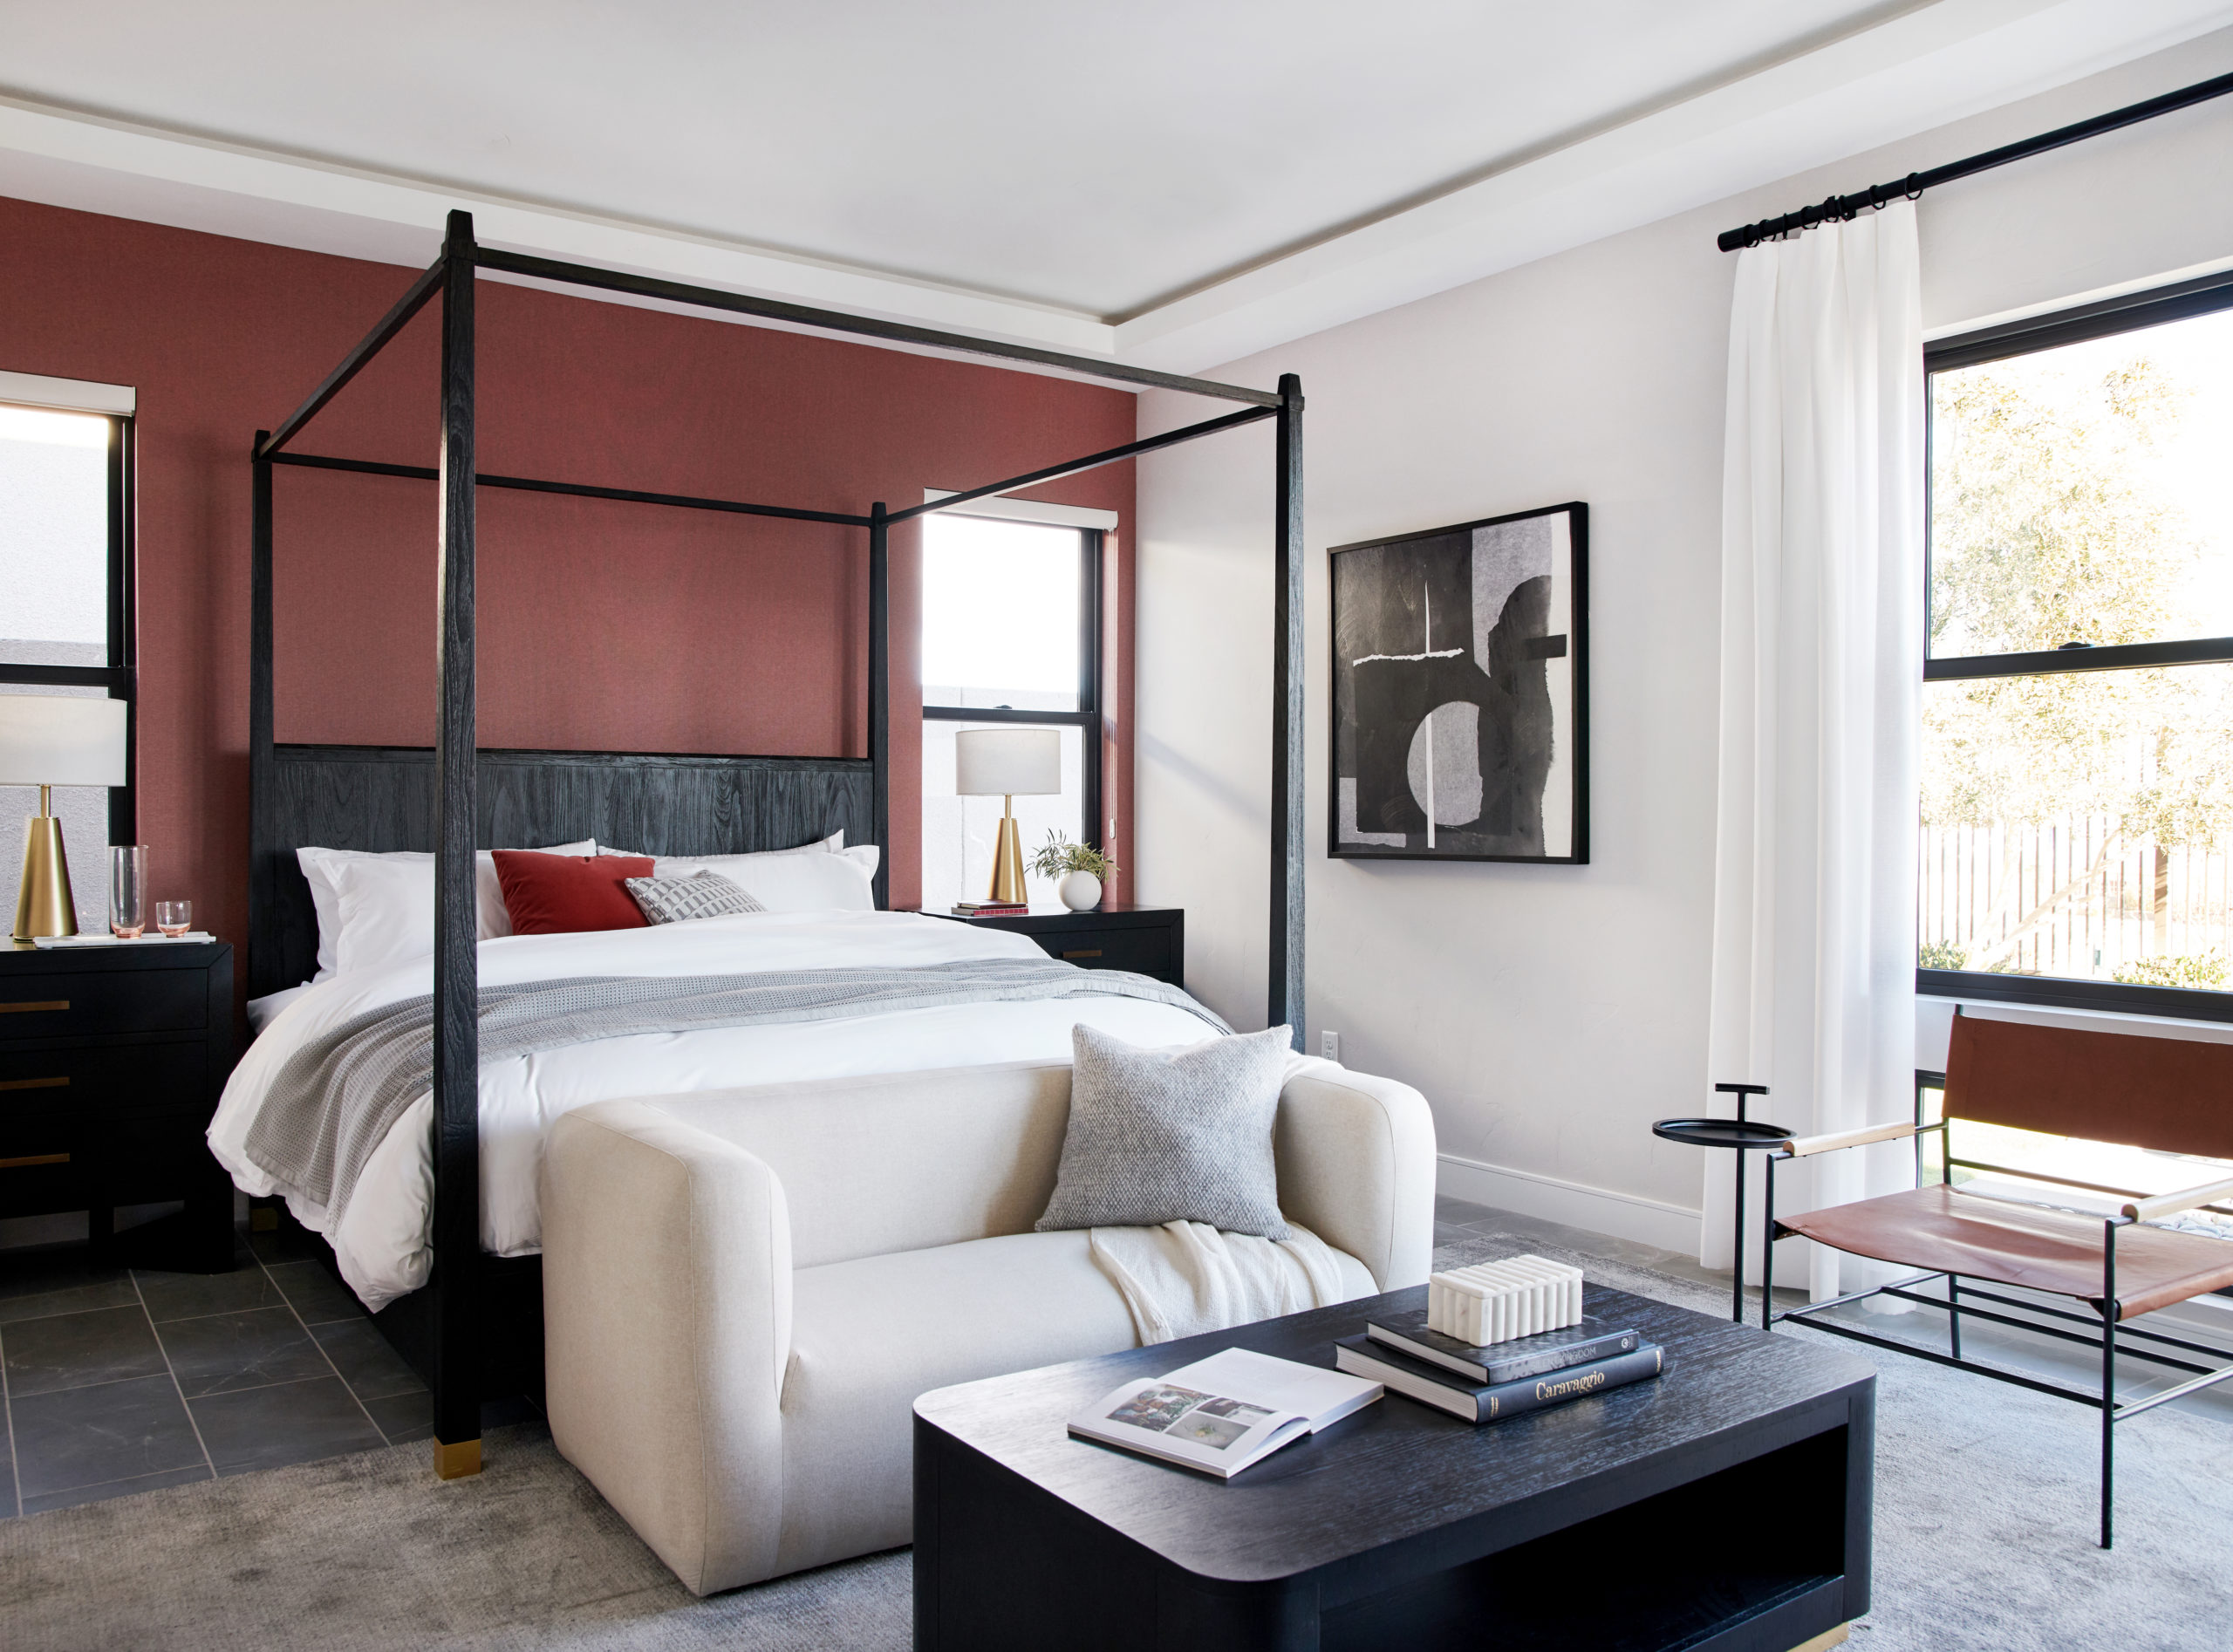 Modern Glam Bedrooms Bathrooms And Everything You Need To Get The Look Bobby Berk